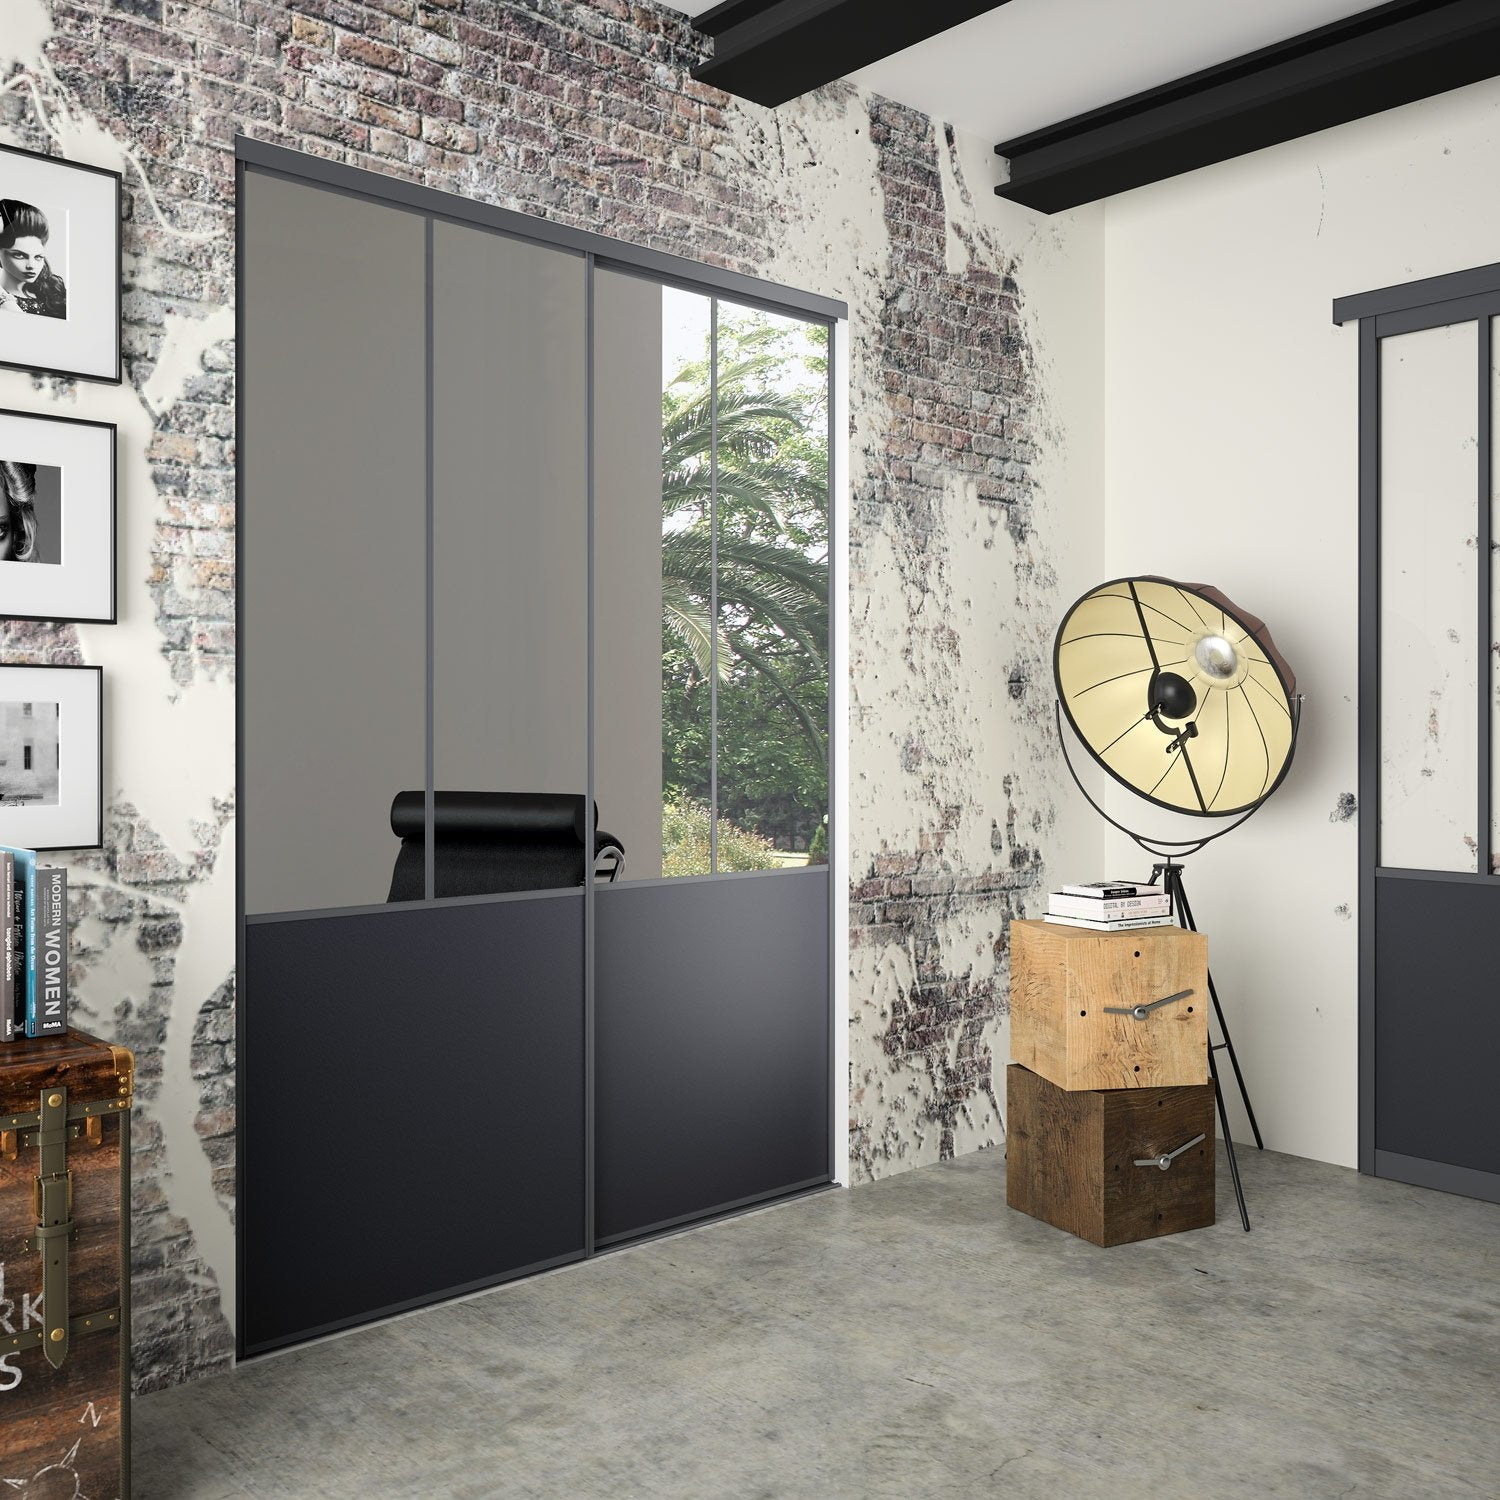 Lot De 2 Portes De Placard + Rail Coulissante Miroir / Noir L.150 X Idees De Conception De Maison